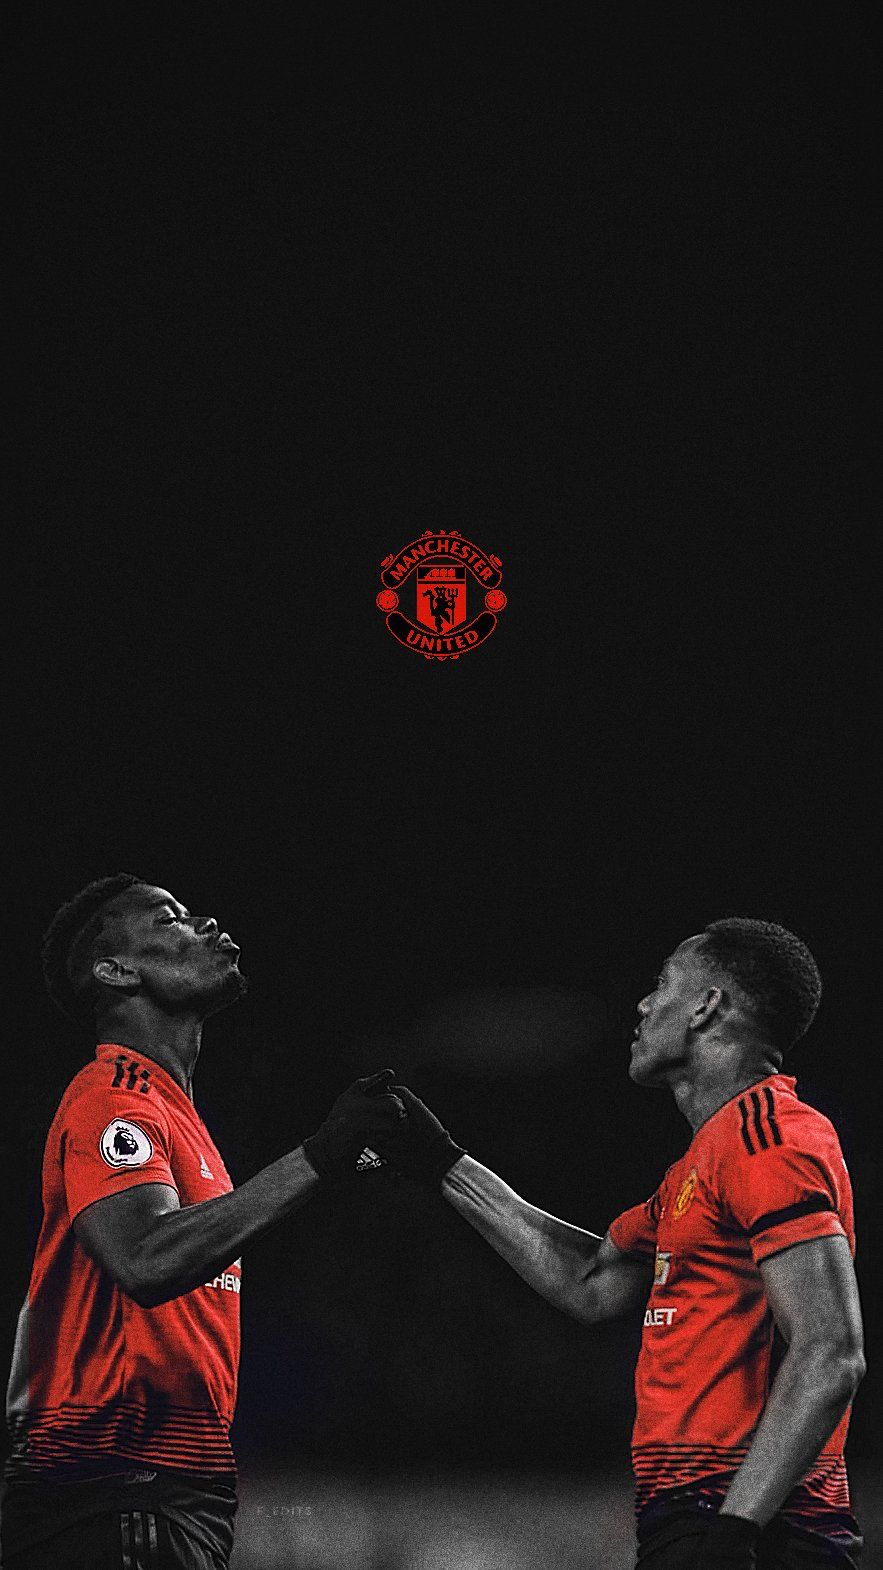 french connection manchester united wallpaper manchester united soccer manchester united players manchester united wallpaper